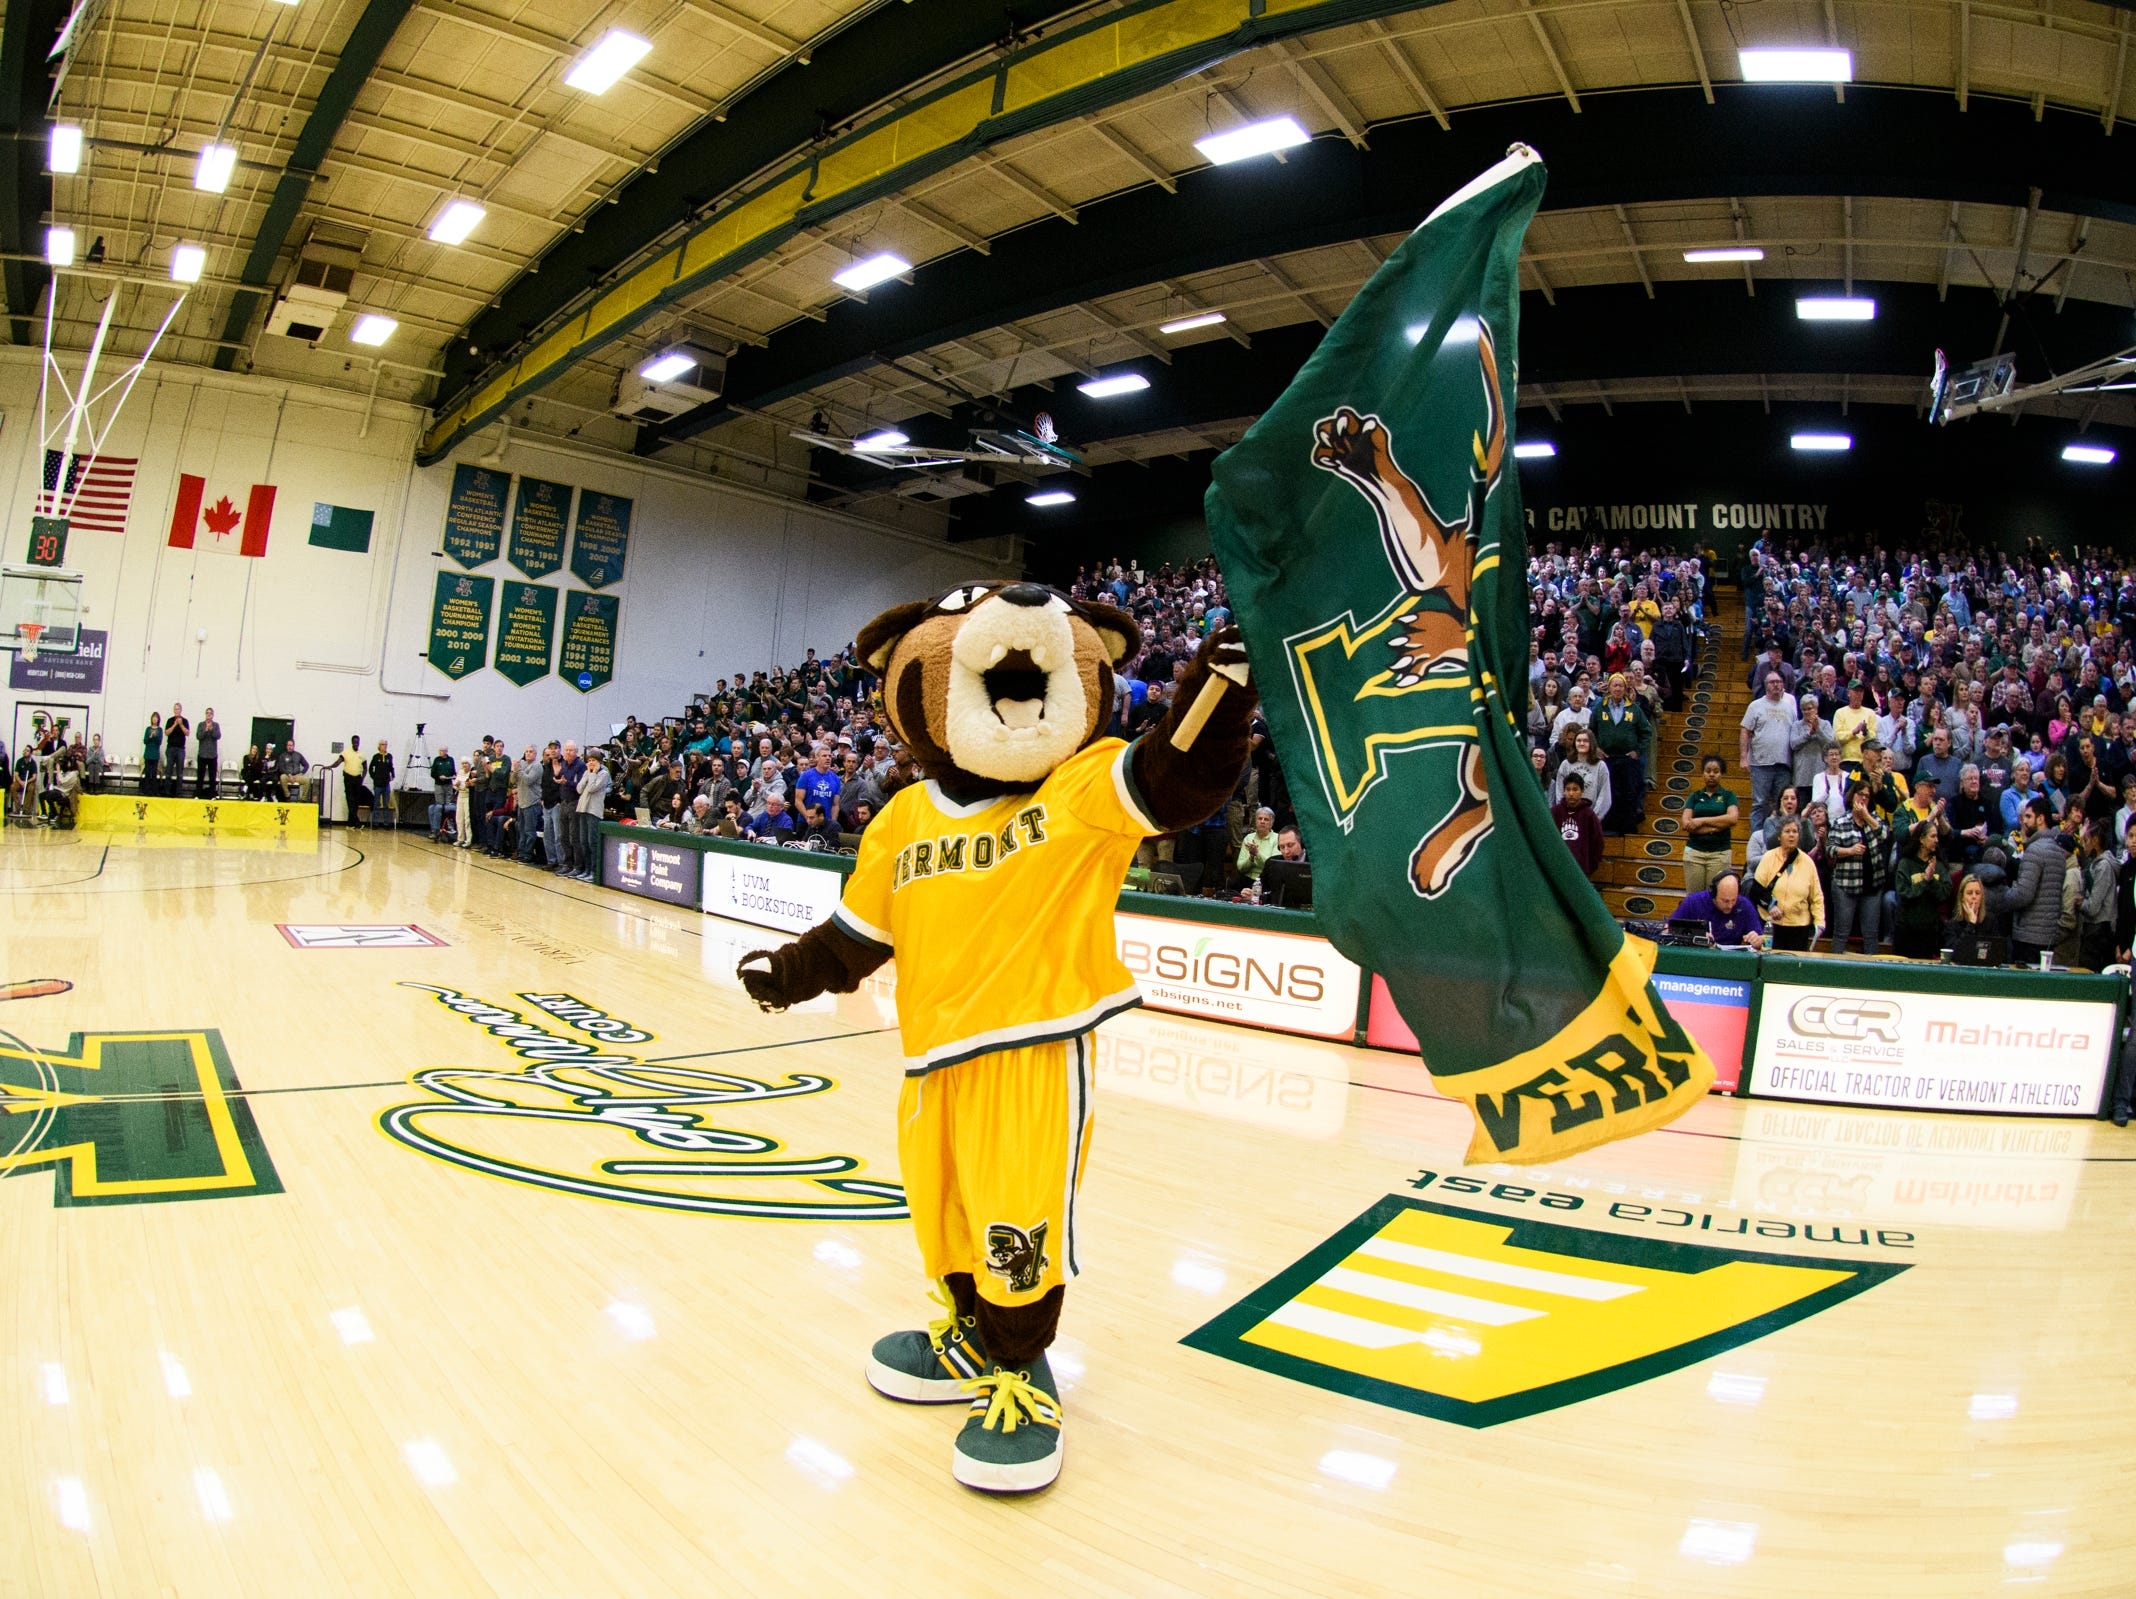 Rally, the Catamounts mascot cheers for the team during the men's basketball game between the Albany Great Danes and the Vermont Catamounts at Patrick Gym on Saturday February 9, 2019 in Burlington, Vermont.